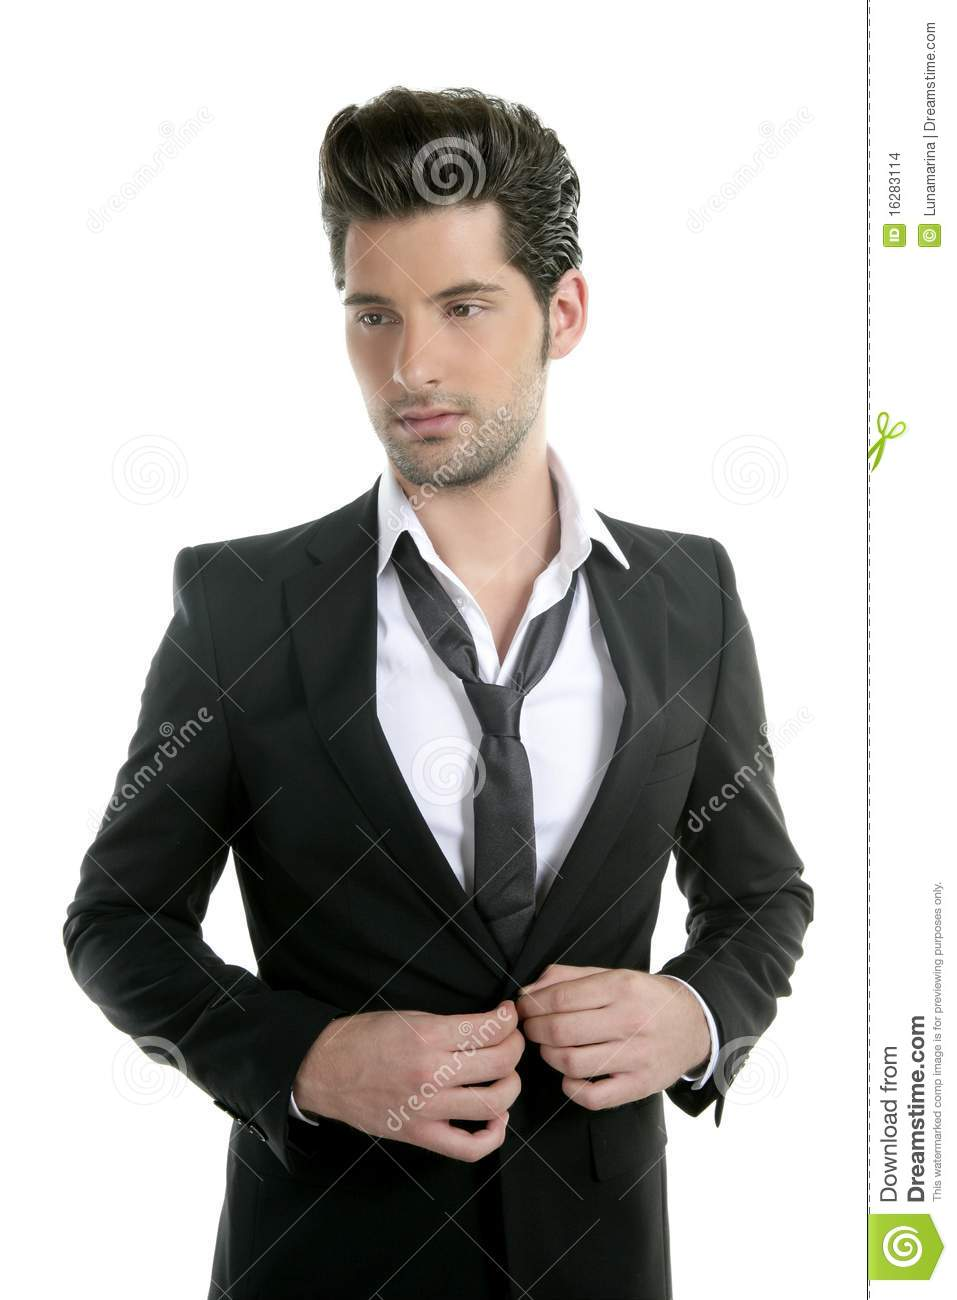 Handsome Young Man Suit Casual Tie Suit Stock Images - Image: 16283114